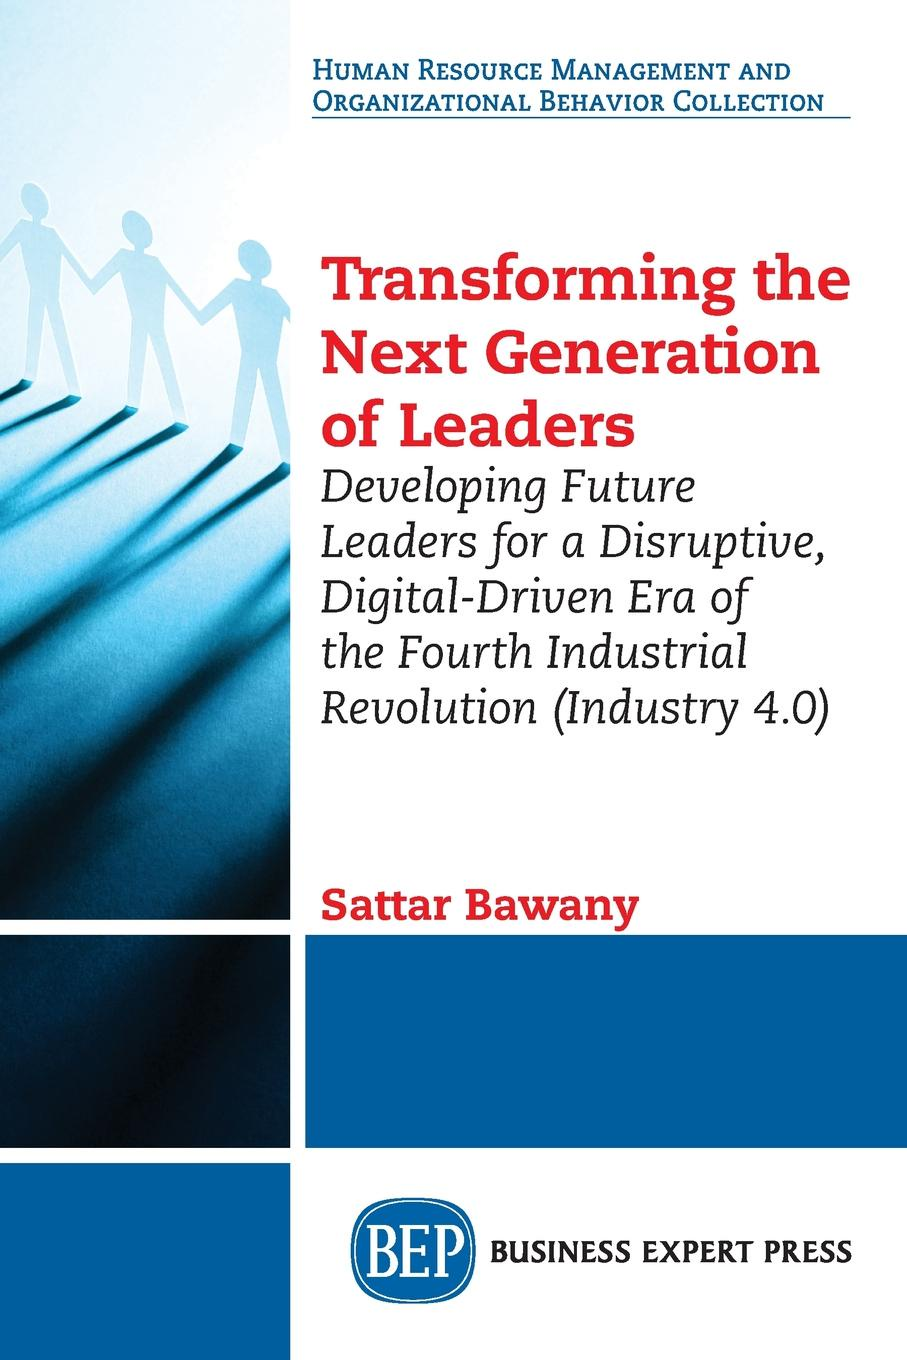 Sattar Bawany Transforming the Next Generation Leaders. Developing Future Leaders for a Disruptive, Digital-Driven Era of the Fourth Industrial Revolution (Industry 4.0) b bahramian transition to a new world order what we leave behind for the next generation